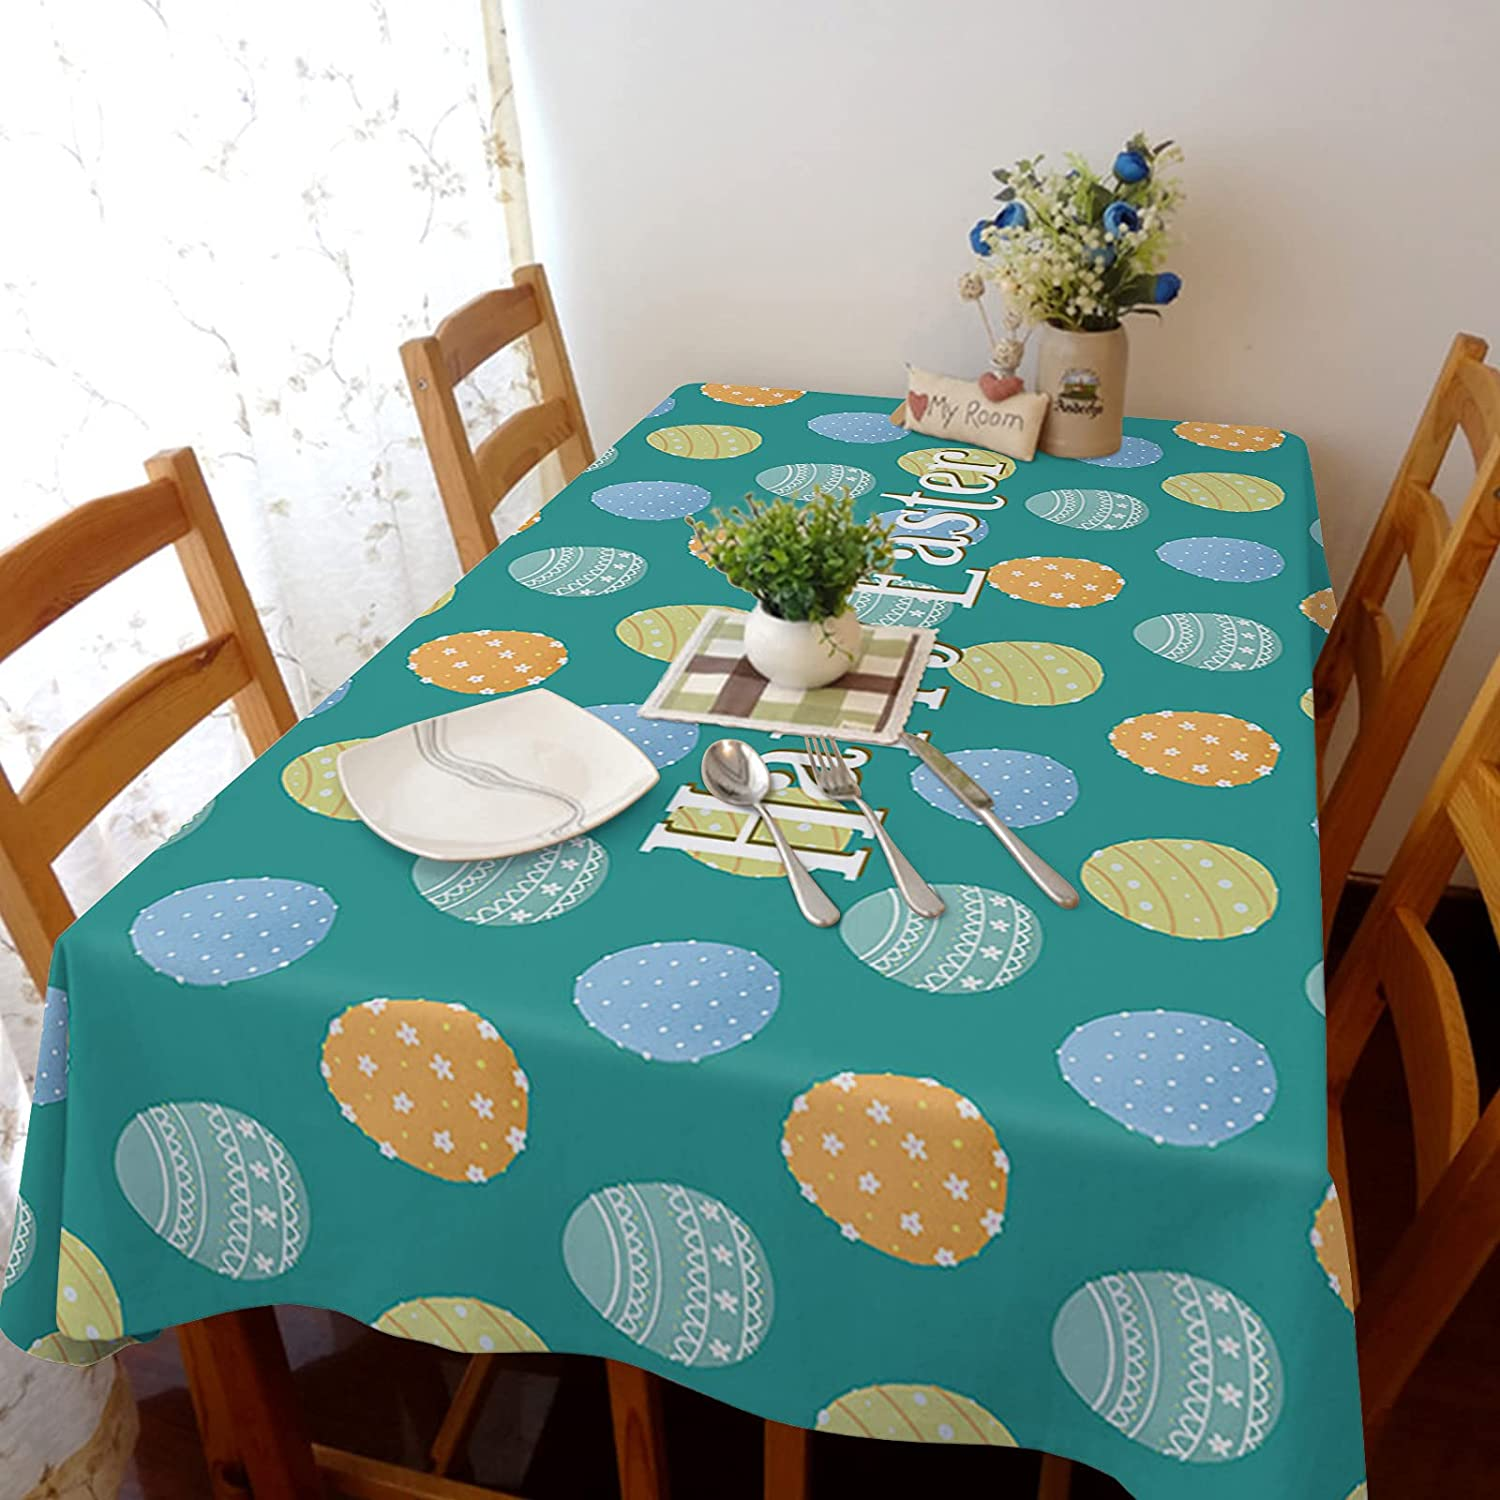 Max 40% OFF Flouky 60x140in Durable Table Cover Outdoor Safety and trust for Restaurant Picni